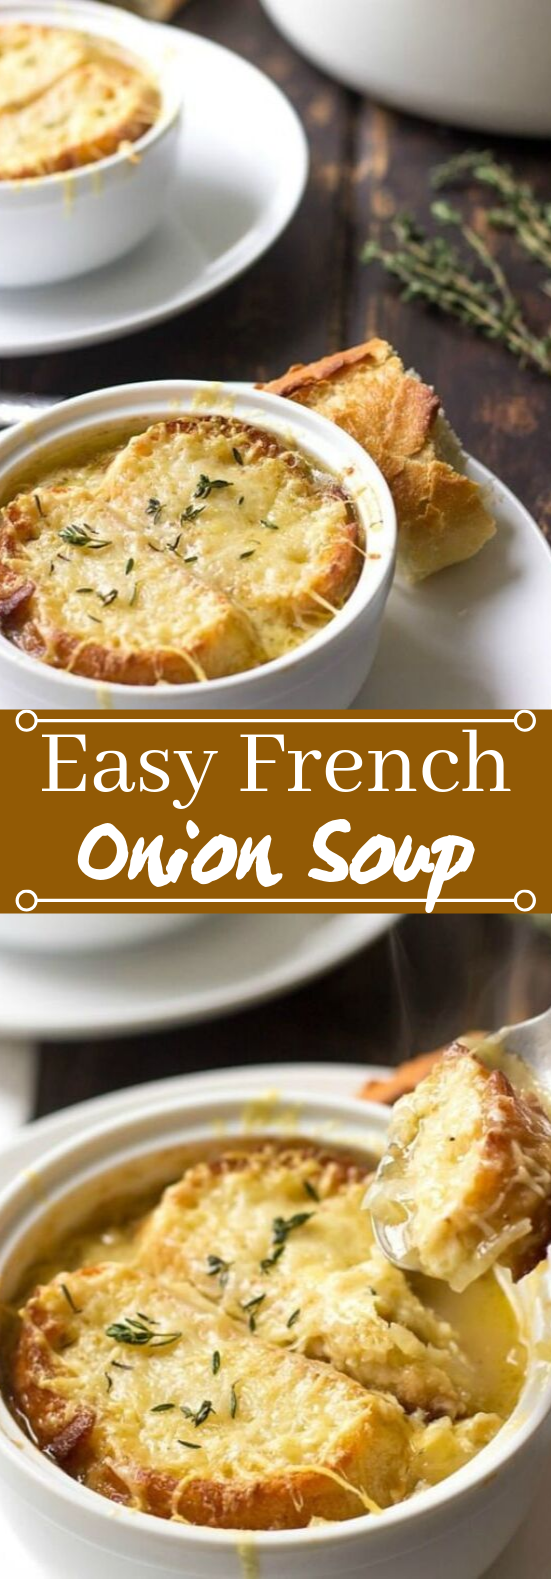 Easy French Onion Soup #dinner #soup